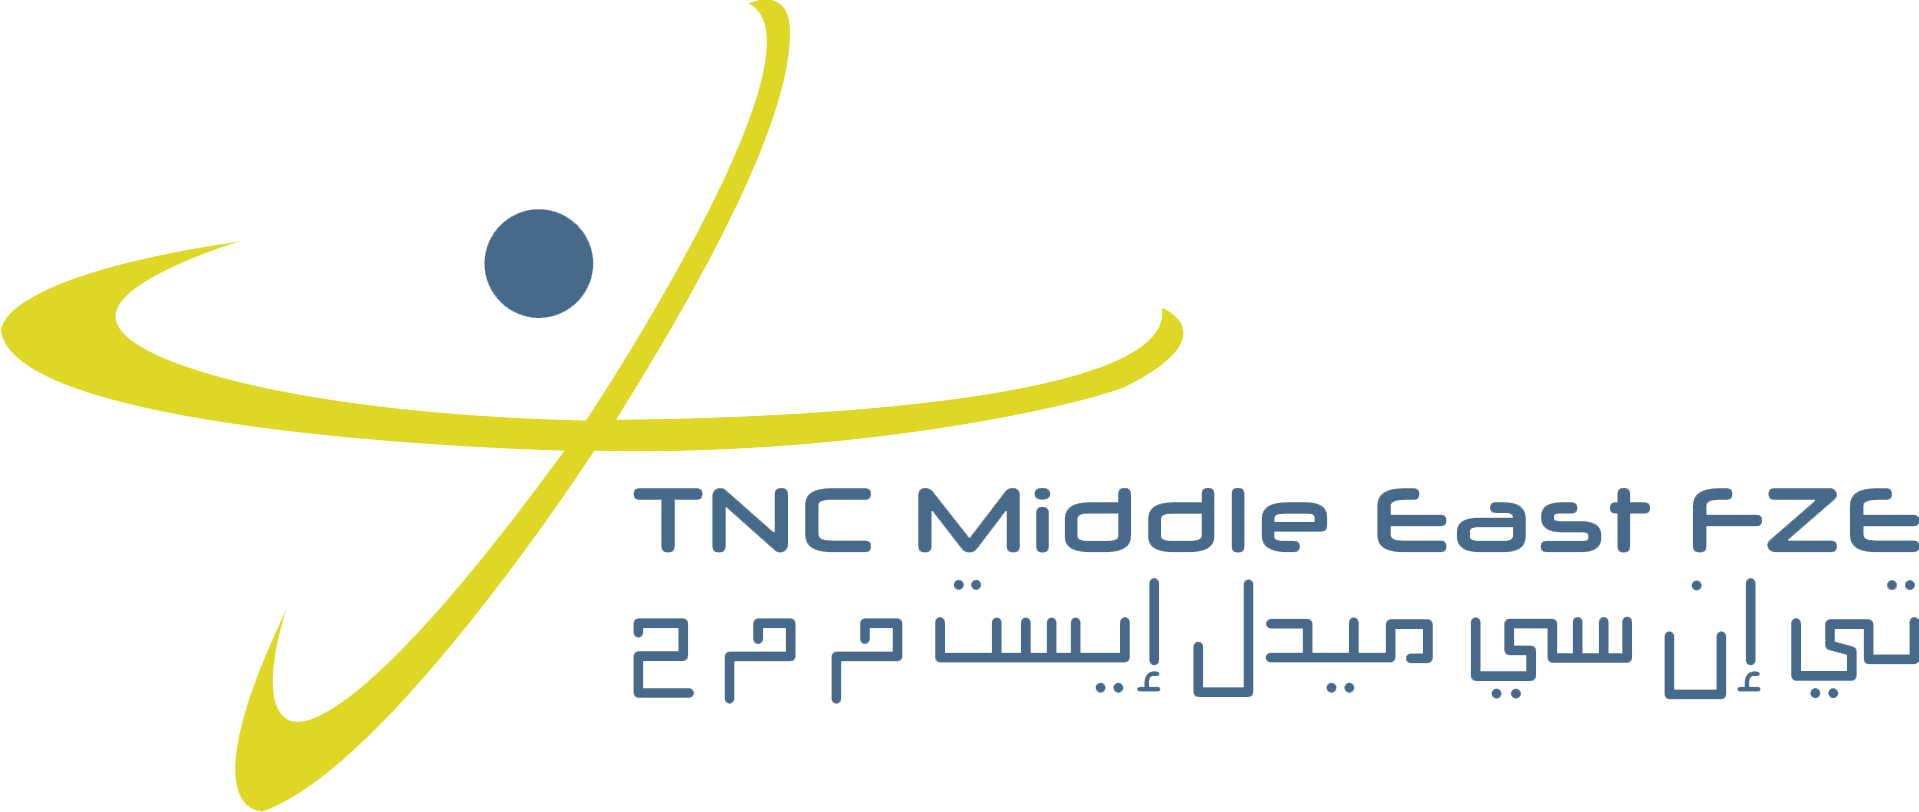 TNC Middle East FZE